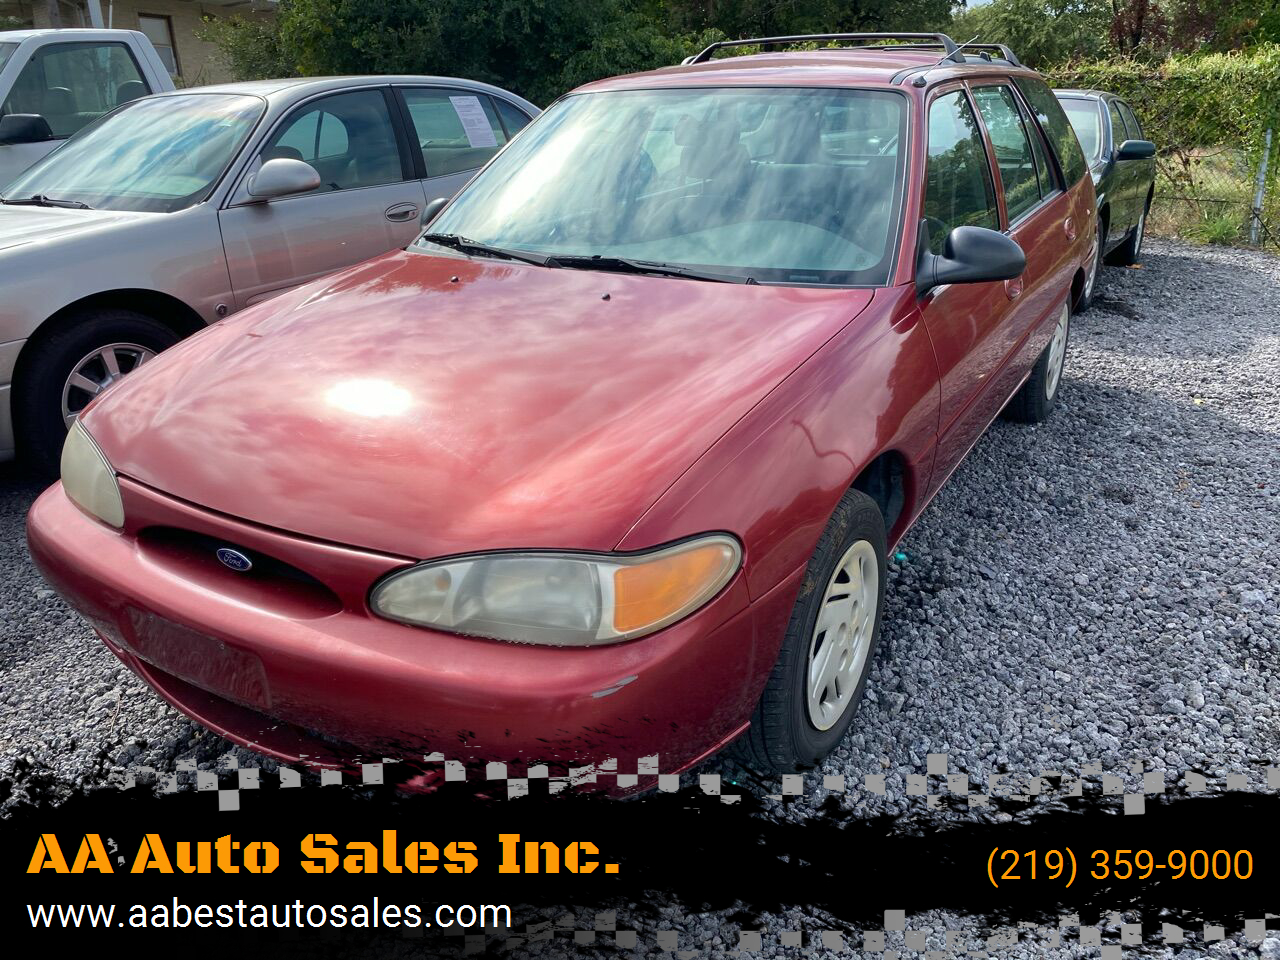 used ford escort for sale carsforsale com used ford escort for sale carsforsale